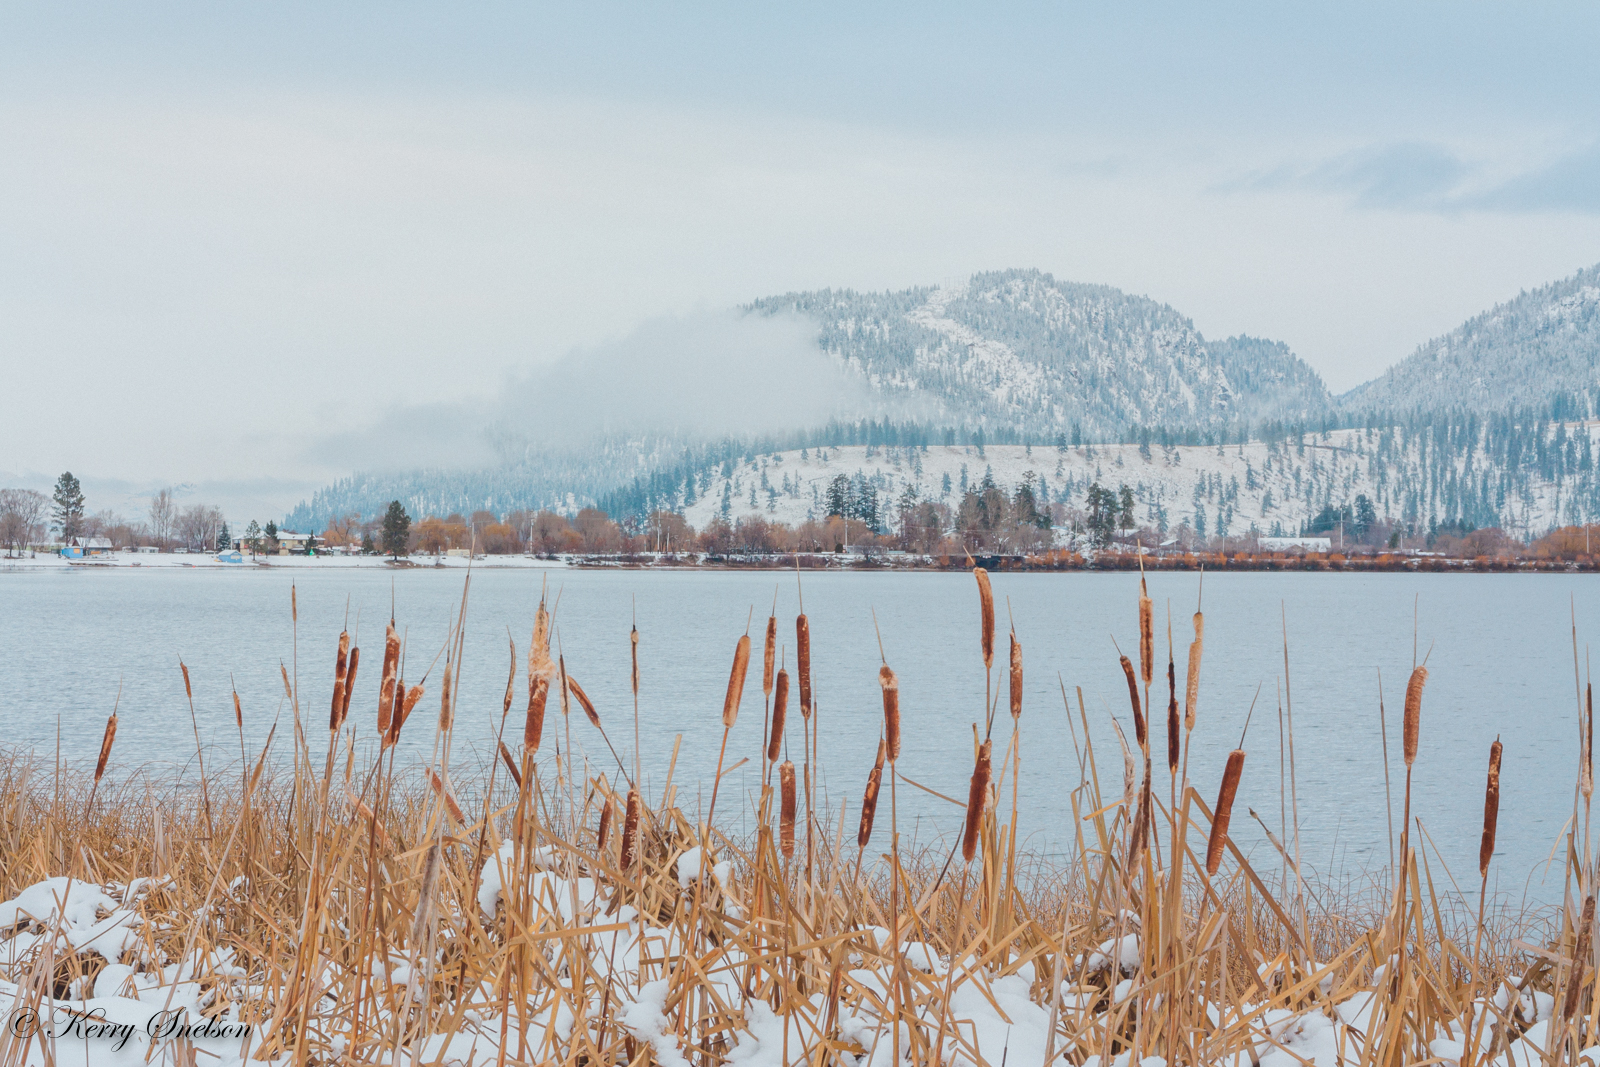 Reeds by Wood Lake in Winter